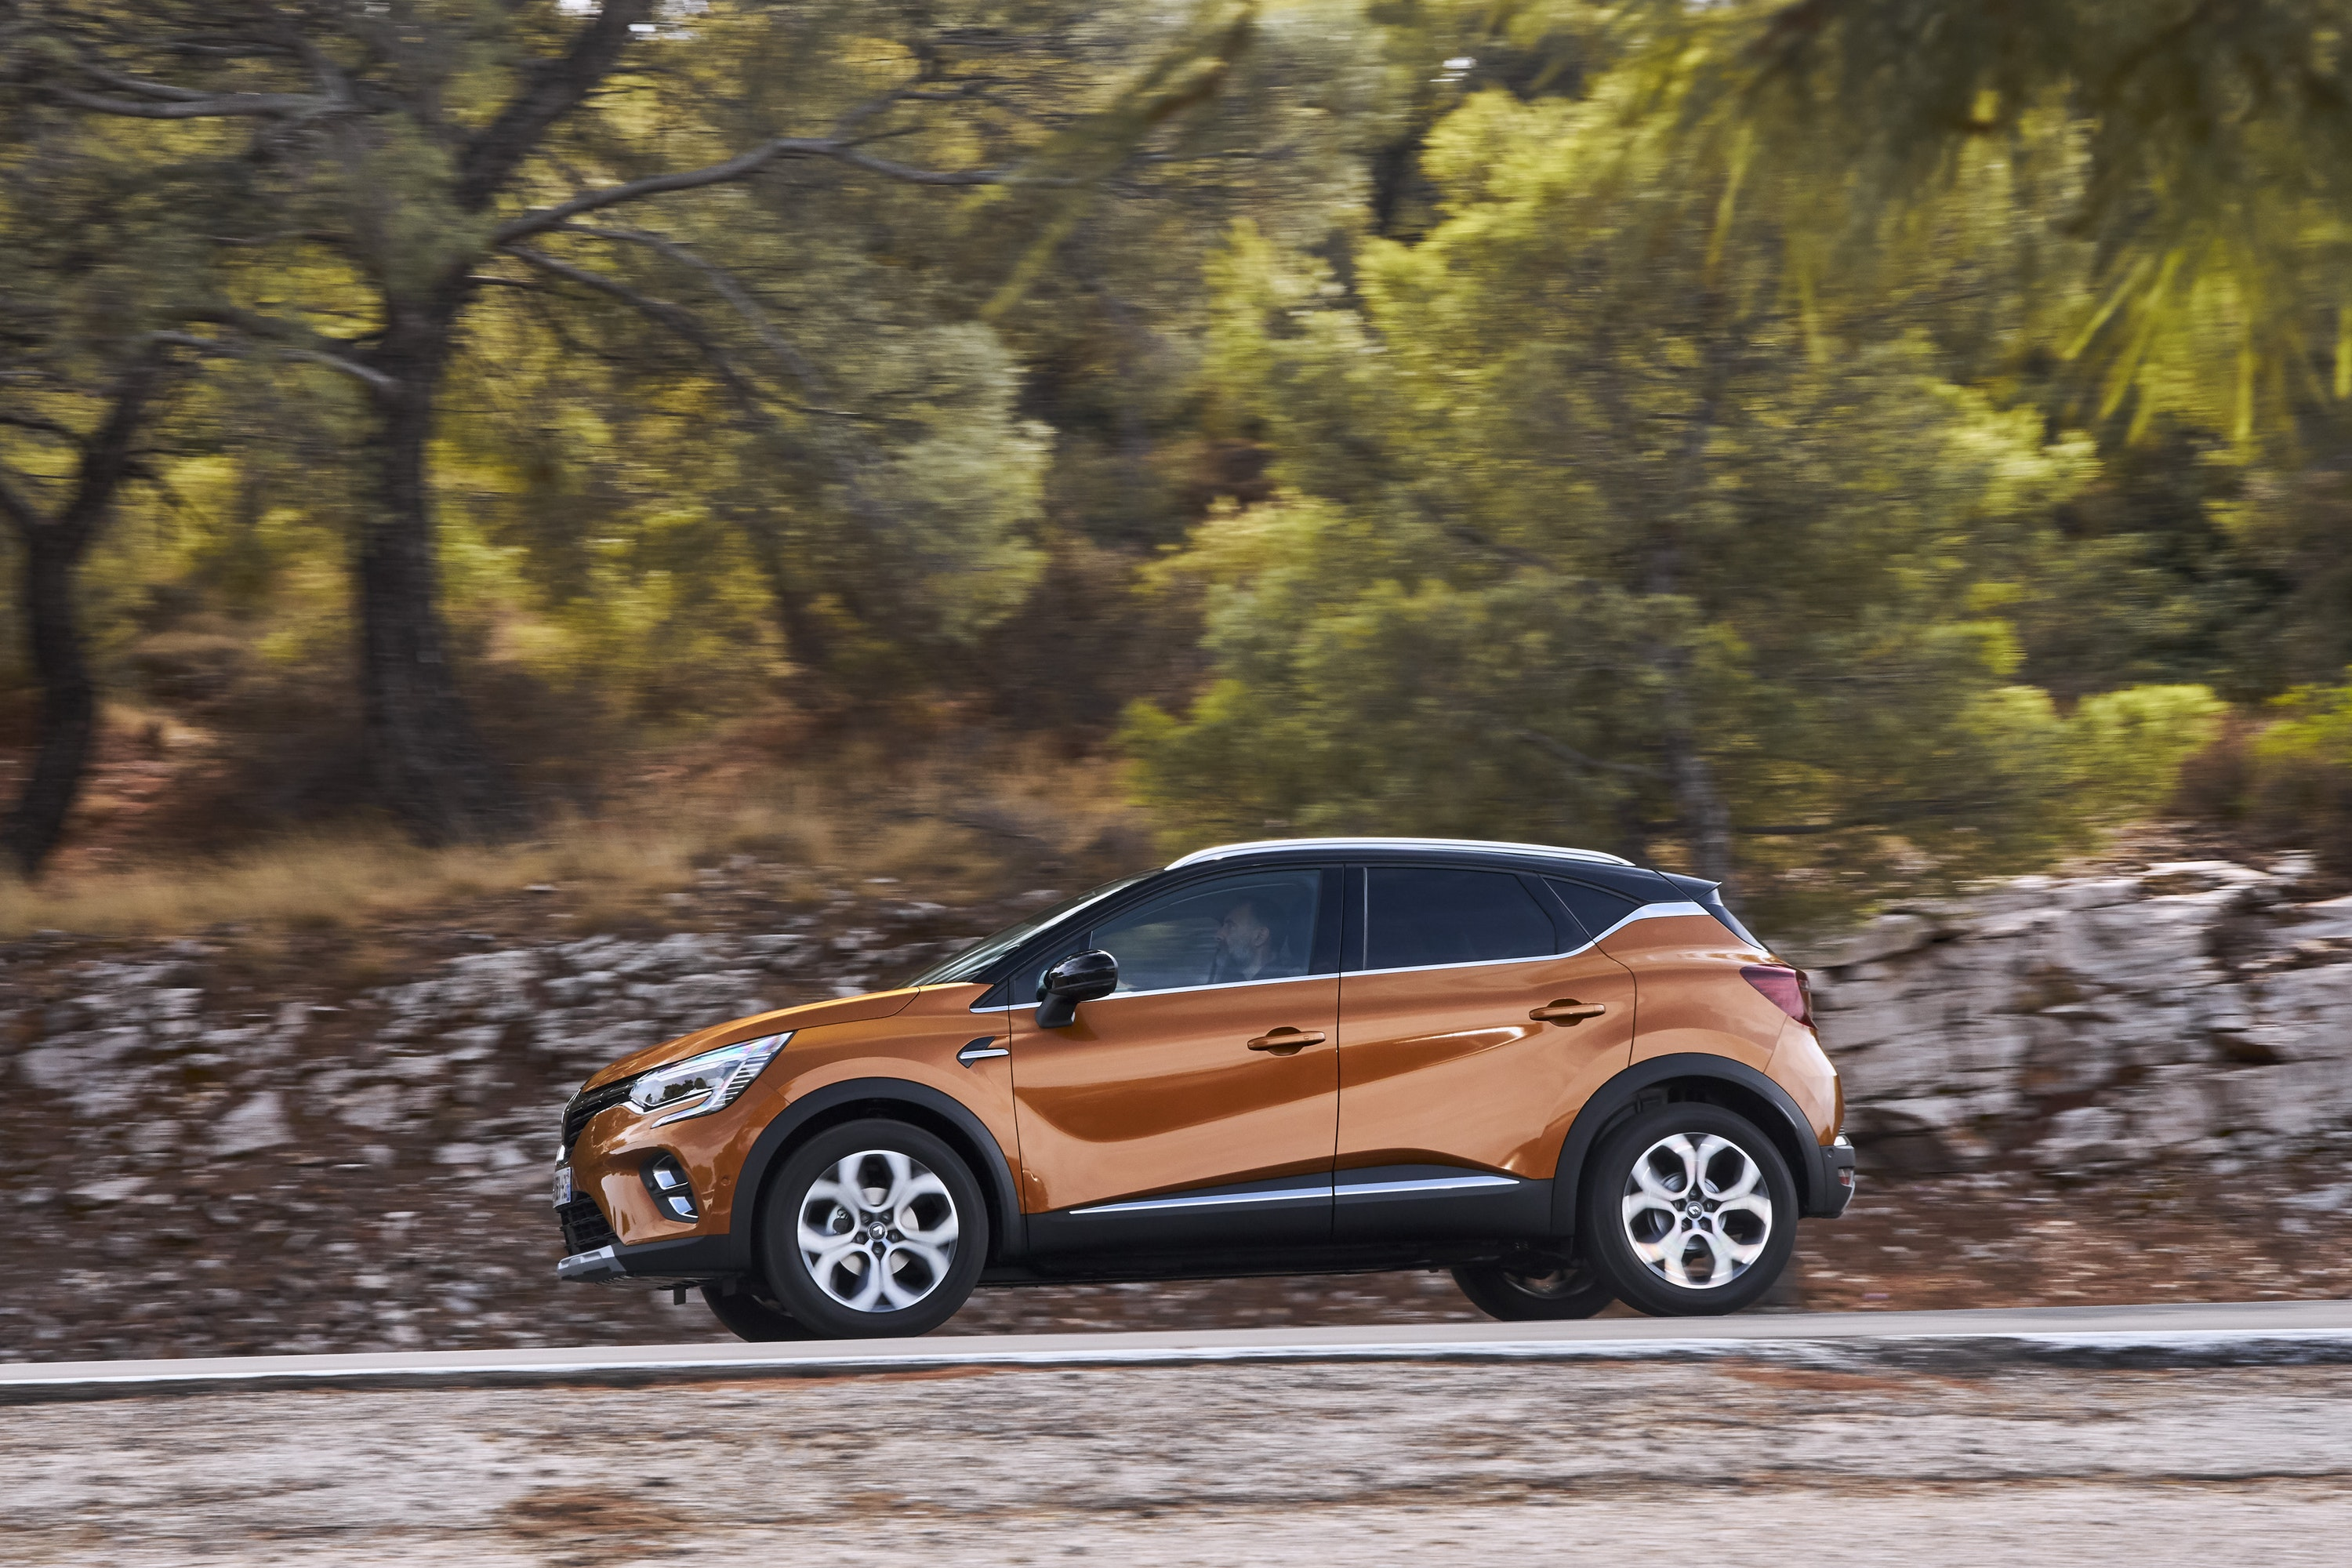 side view of Renault Captur driving on a road